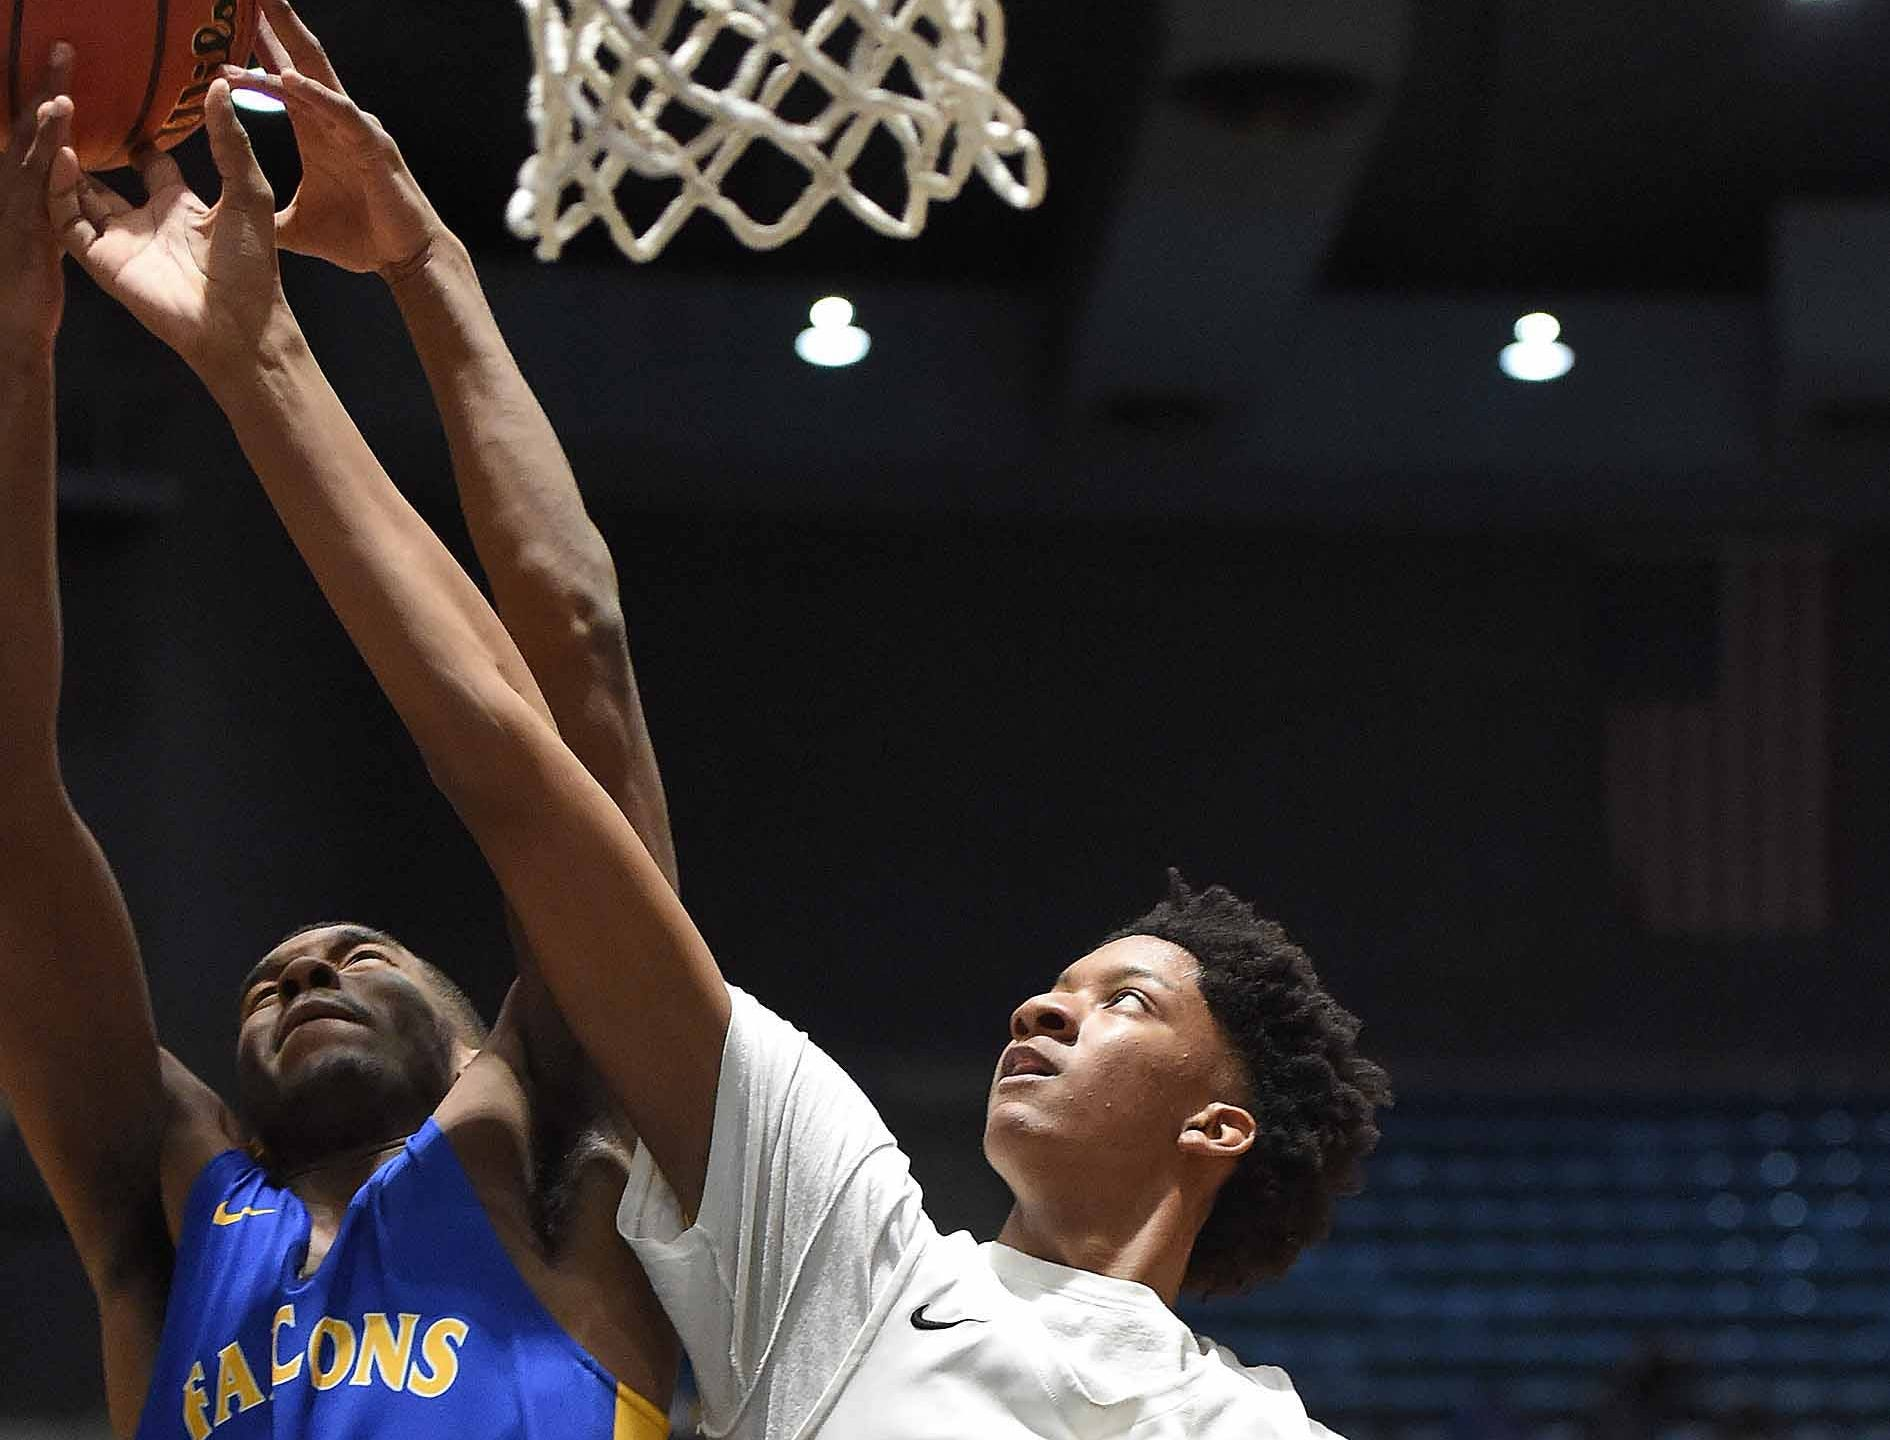 Holly Springs' Derek Fountain (20) rebounds against Velma Jackson's Joshua Lee in the finals of the MHSAA C Spire State Basketball Championships at the Mississippi Coliseum in Jackson, Miss., on Saturday, March 9, 2019.